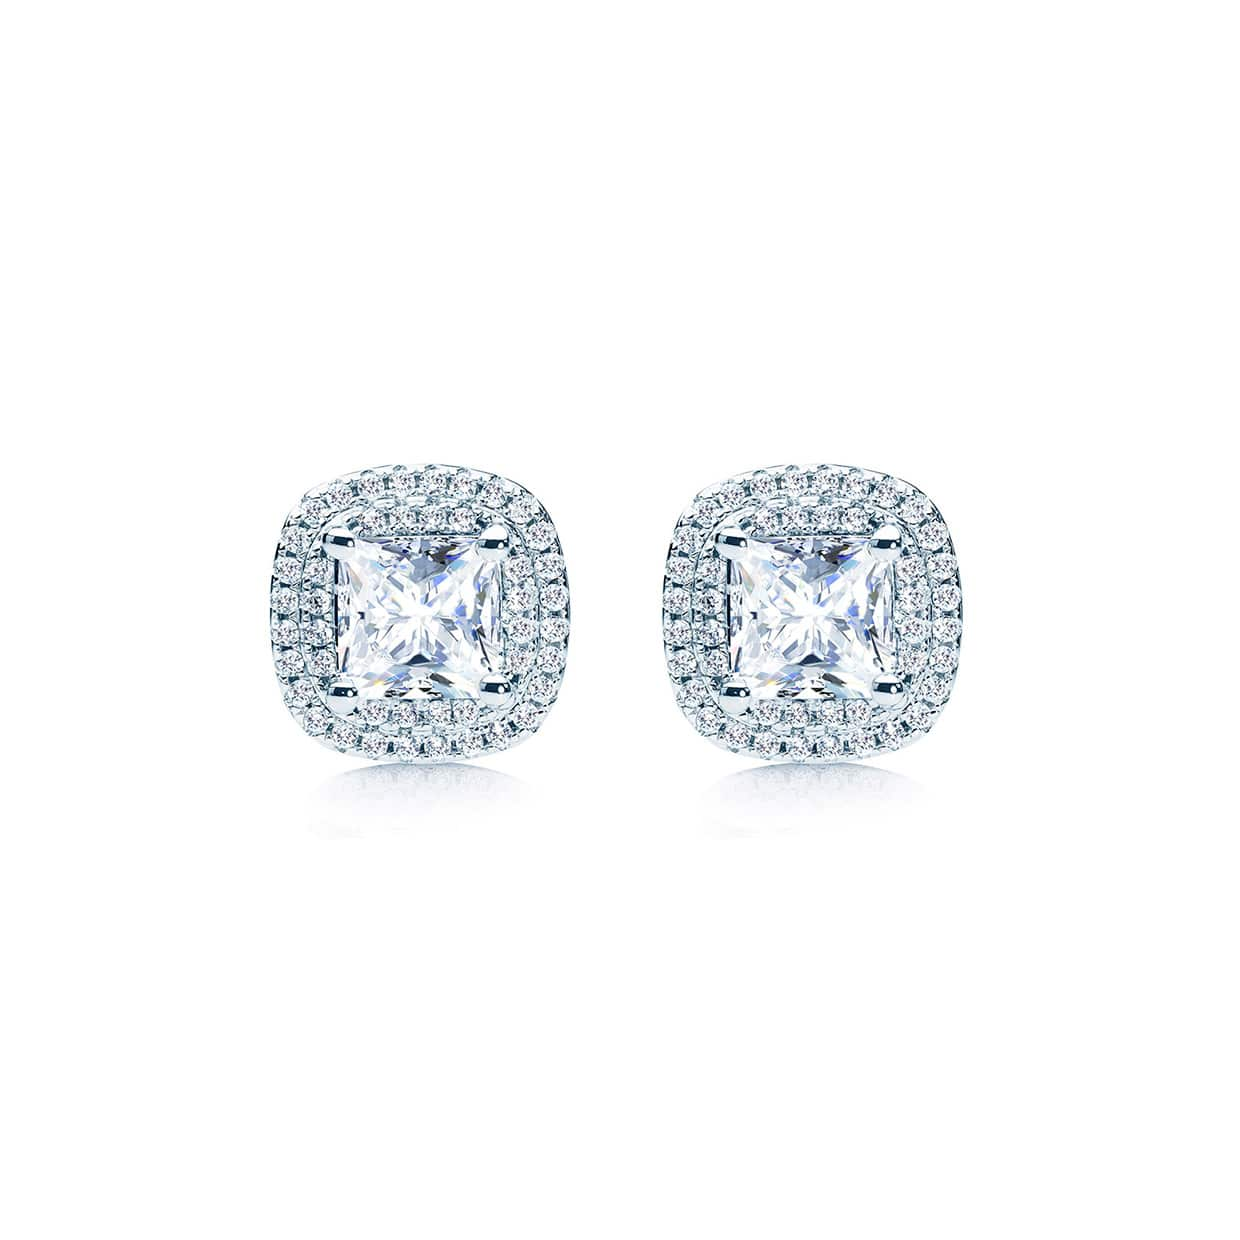 Oxford Double Halo Cushion Cut Earrings - Abelstedt